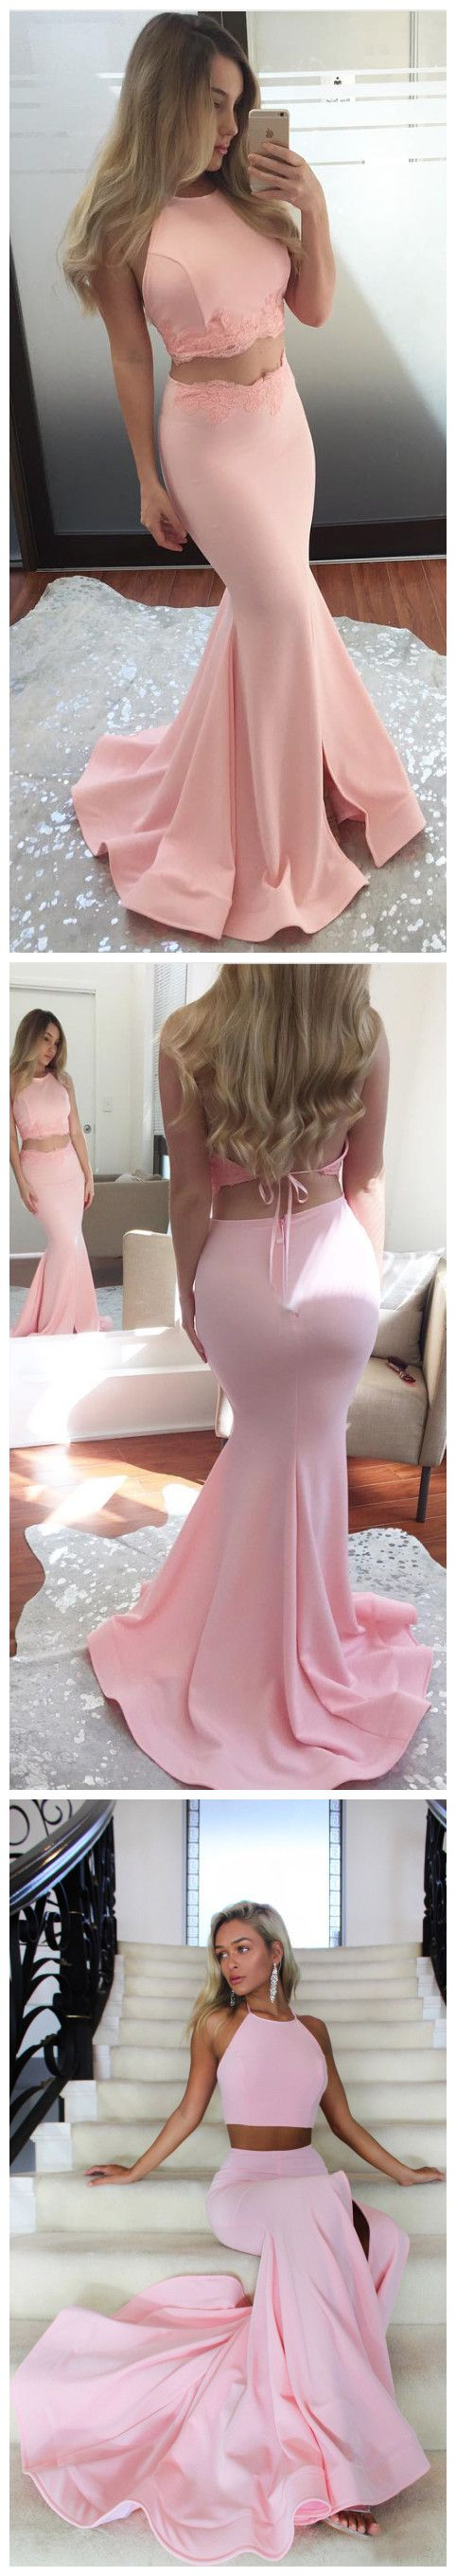 prom dresses long,prom dresses two piece,prom dresses mermaid,prom dresses simple,prom dresses boho,prom dresses halter,prom dresses pink,prom dresses cheap,prom dresses blush,prom dresses 2018,prom dresses tight,prom dresses fitted,prom dresses with straps  #amyprom #longpromdress #fashion #love #party #formal